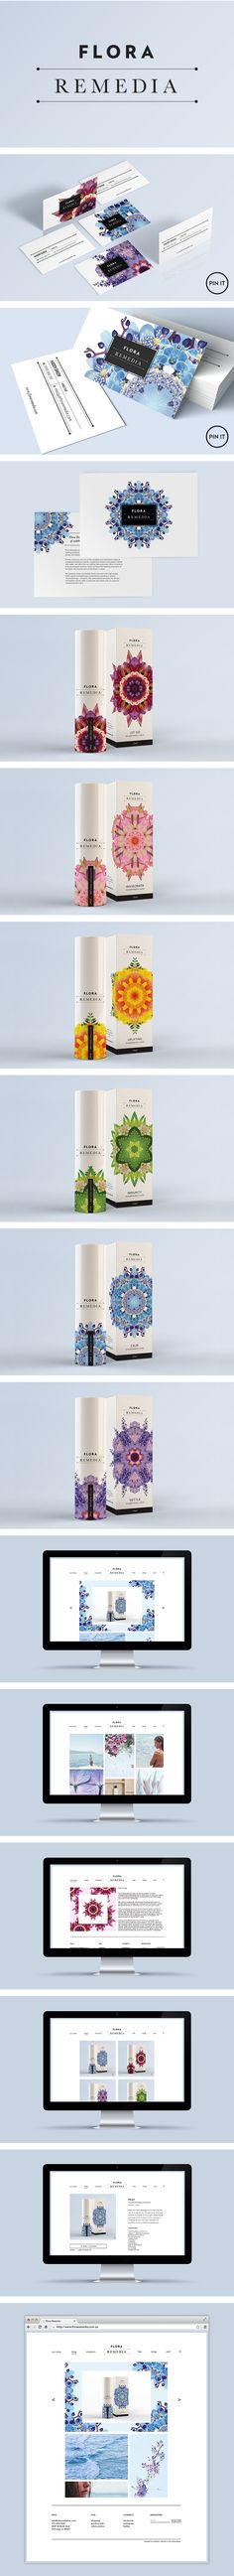 Flora Remedia branding by Smack Bang Designs #Branding #BusinessCards…